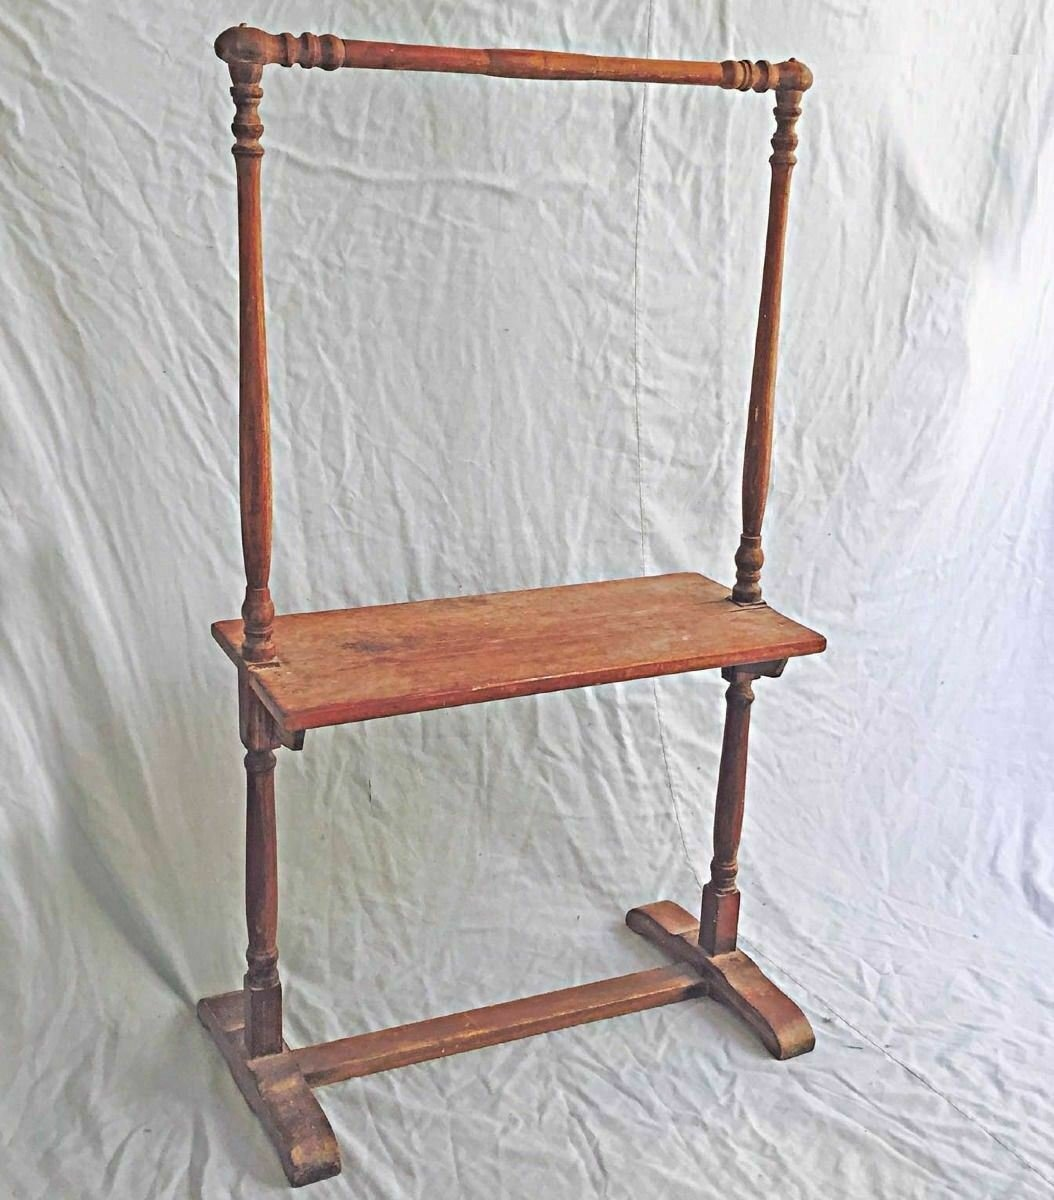 Antique Quilt Rack Table Shelf Stand Display Textile Wood Country Furniture